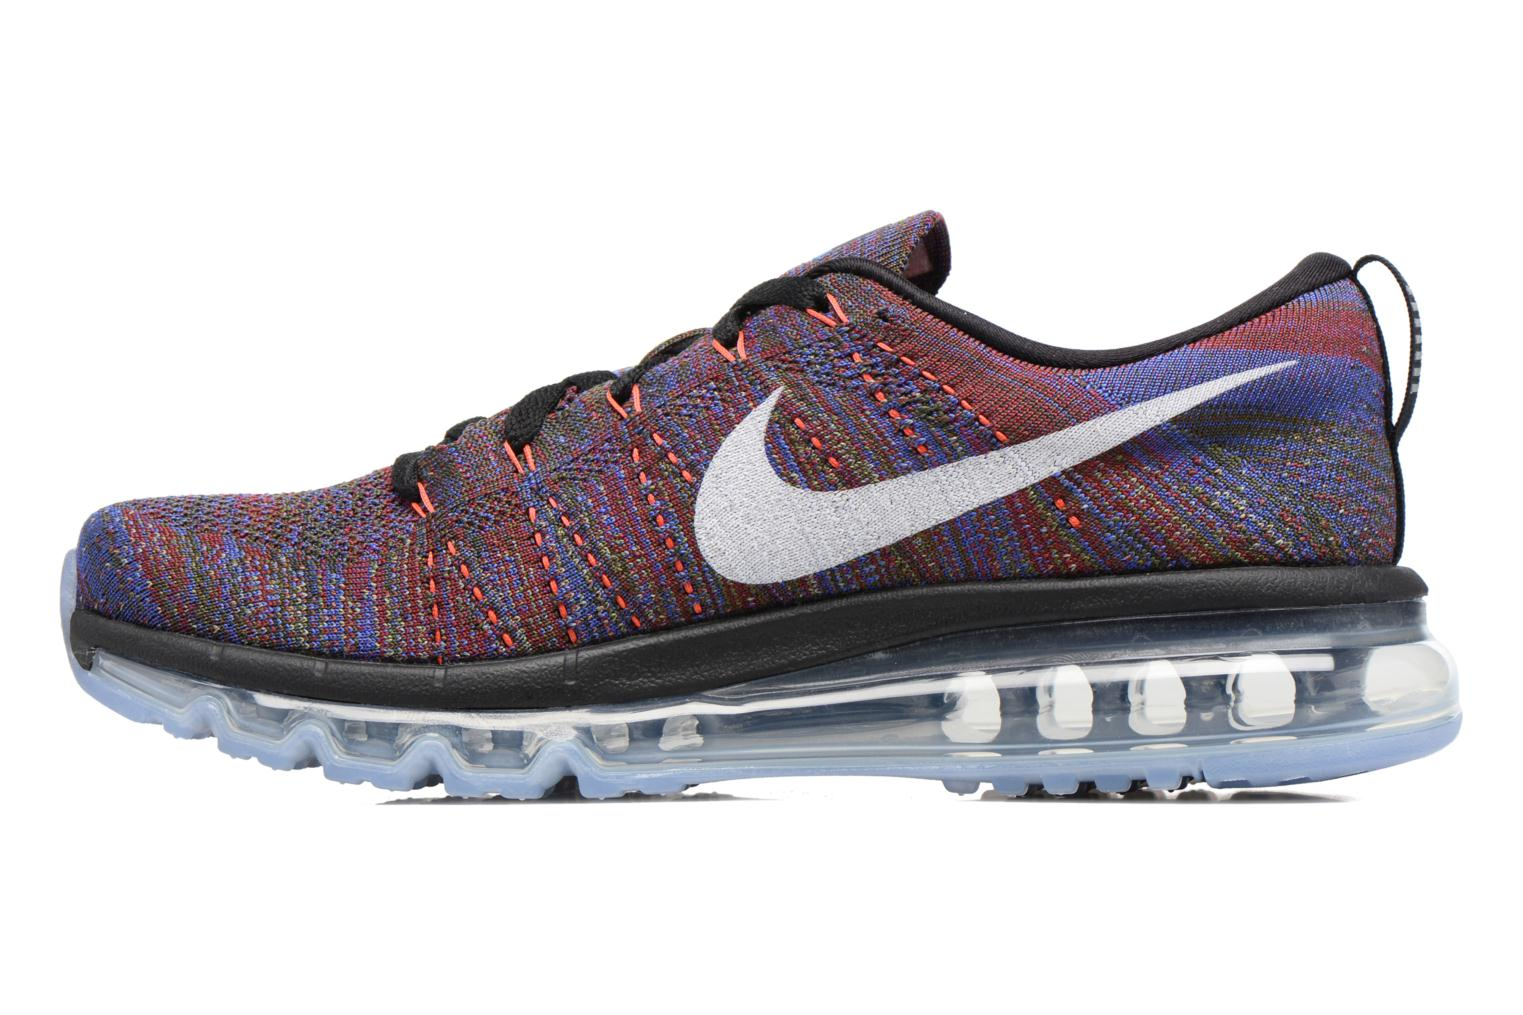 Nike Flyknit Max Black/White-Medium Blue-Team Red